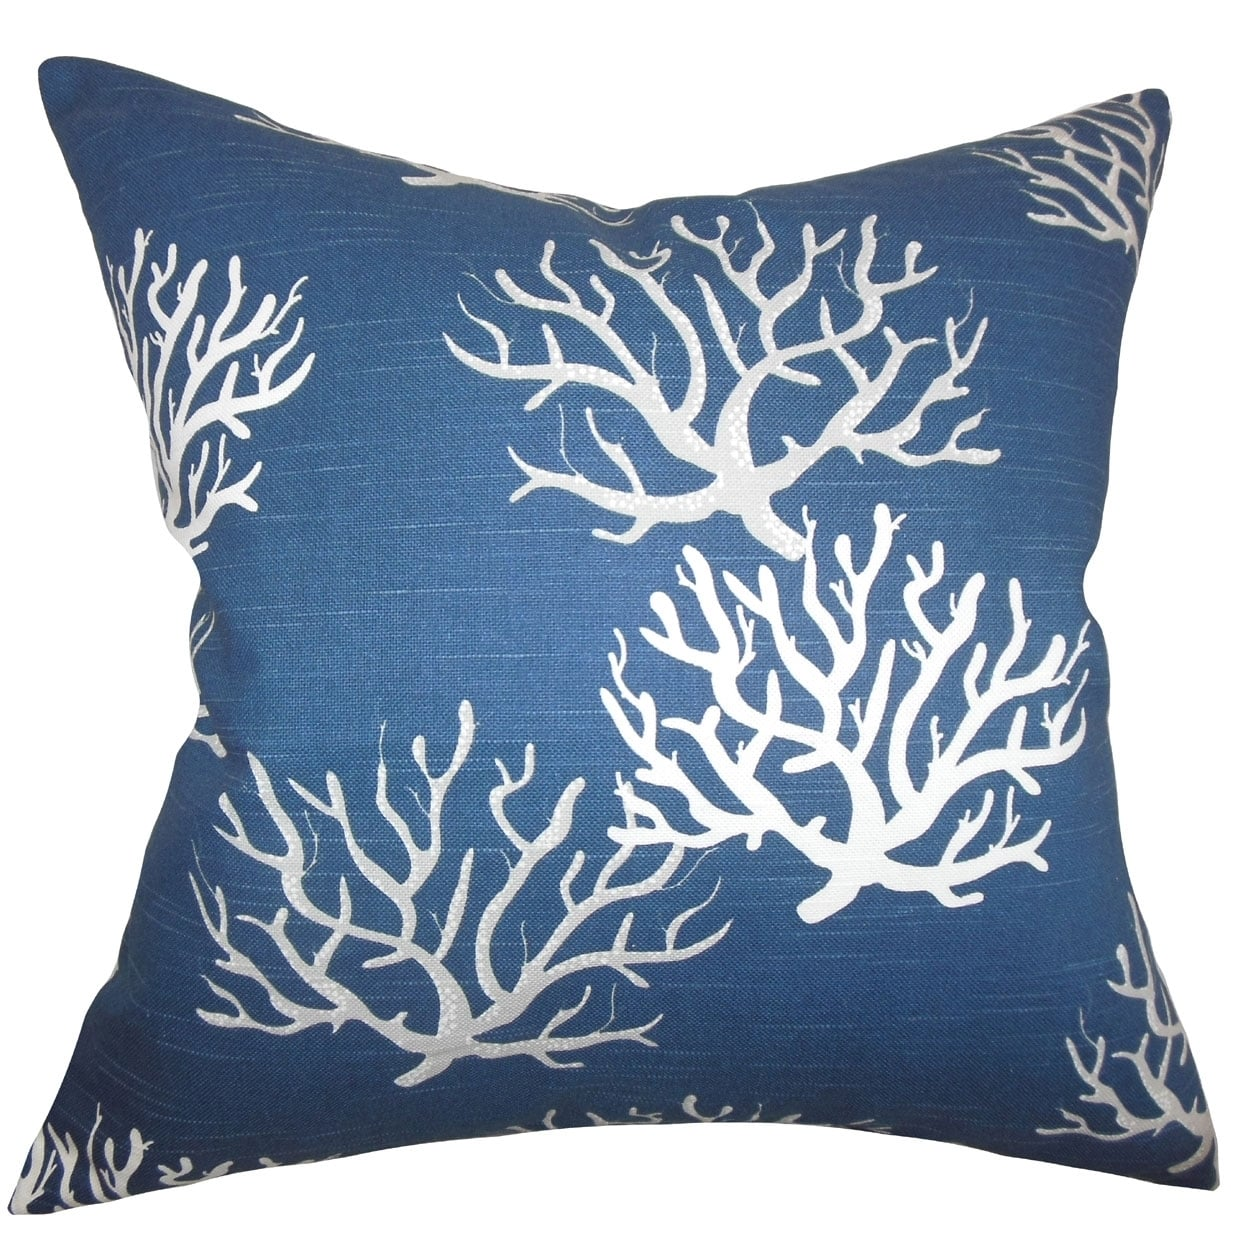 The Pillow Collection Paegna Ikat Throw Pillow